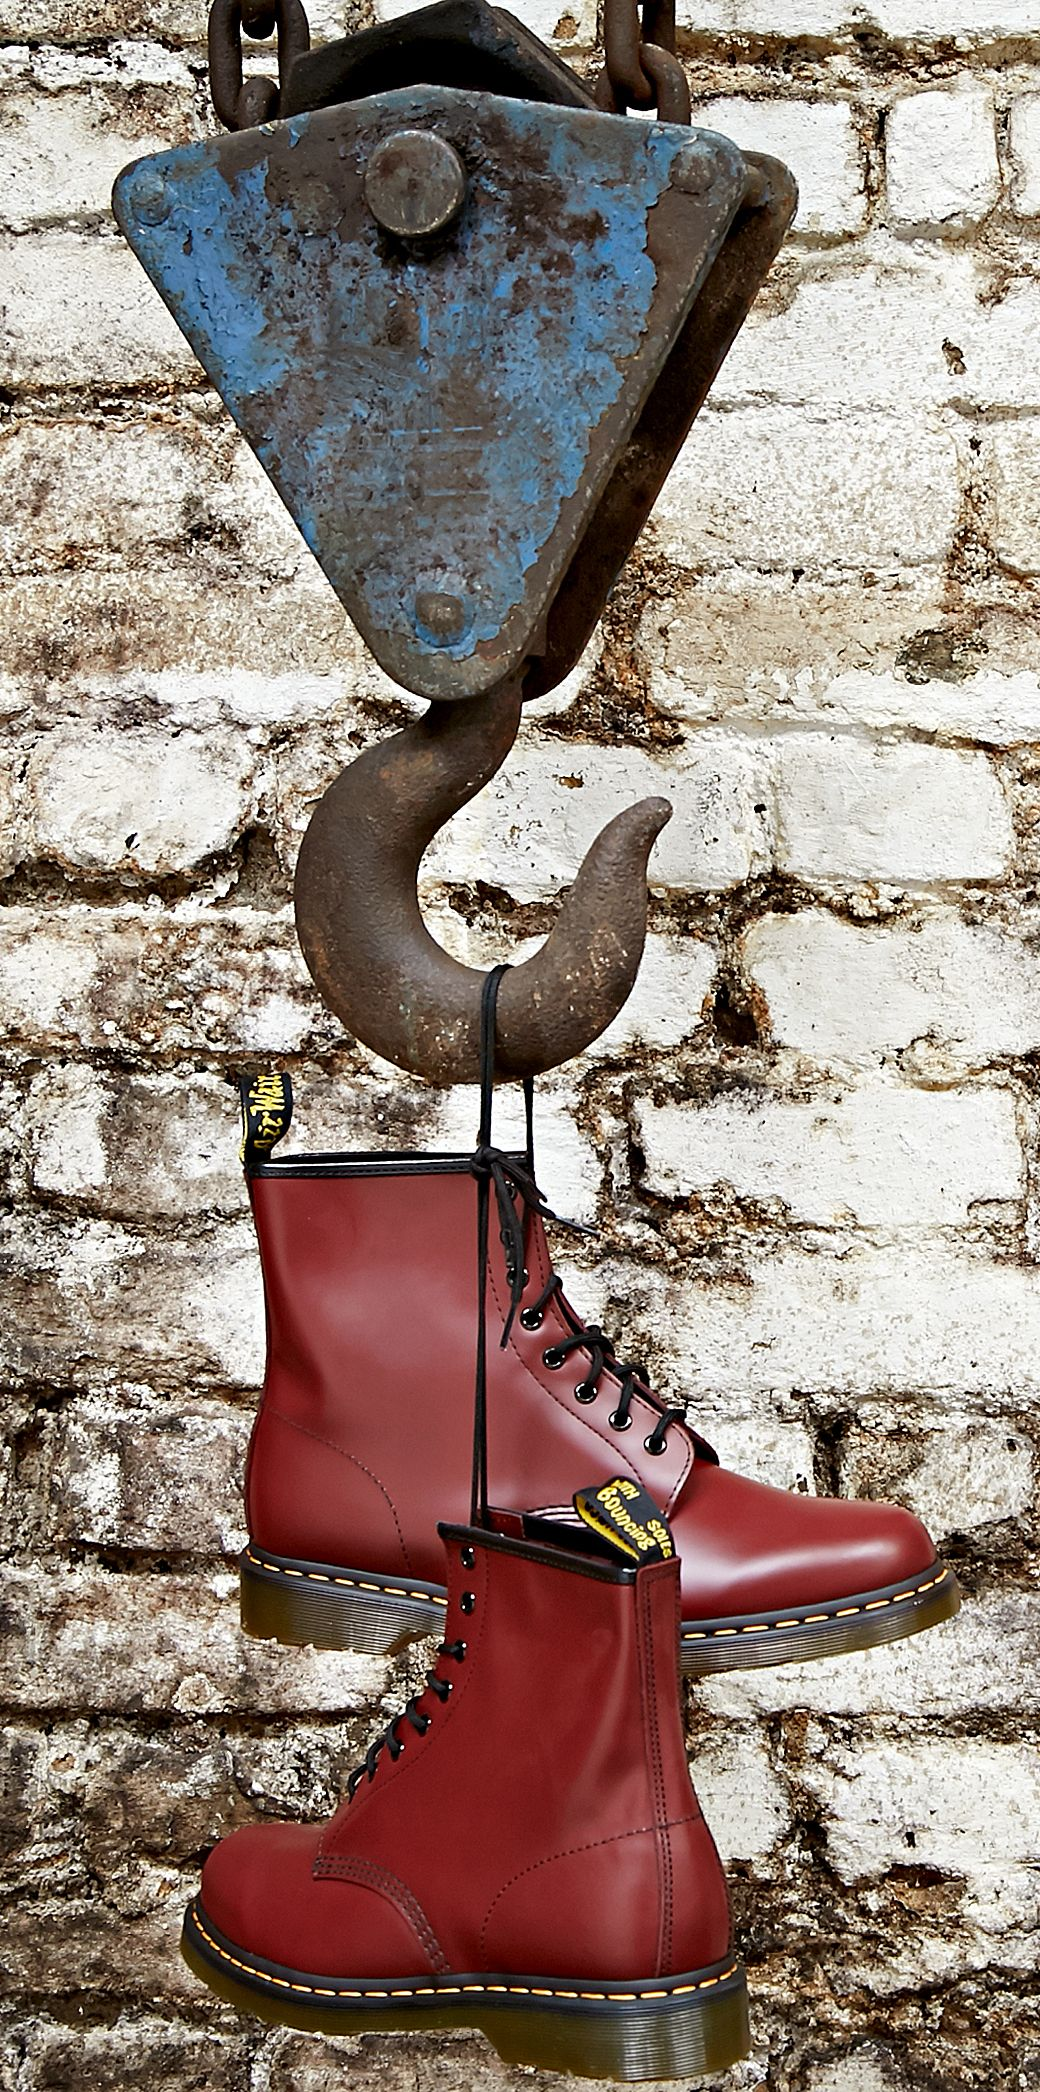 New In: Dr Martens #urbanoutfitters #uoeurope #drmartens